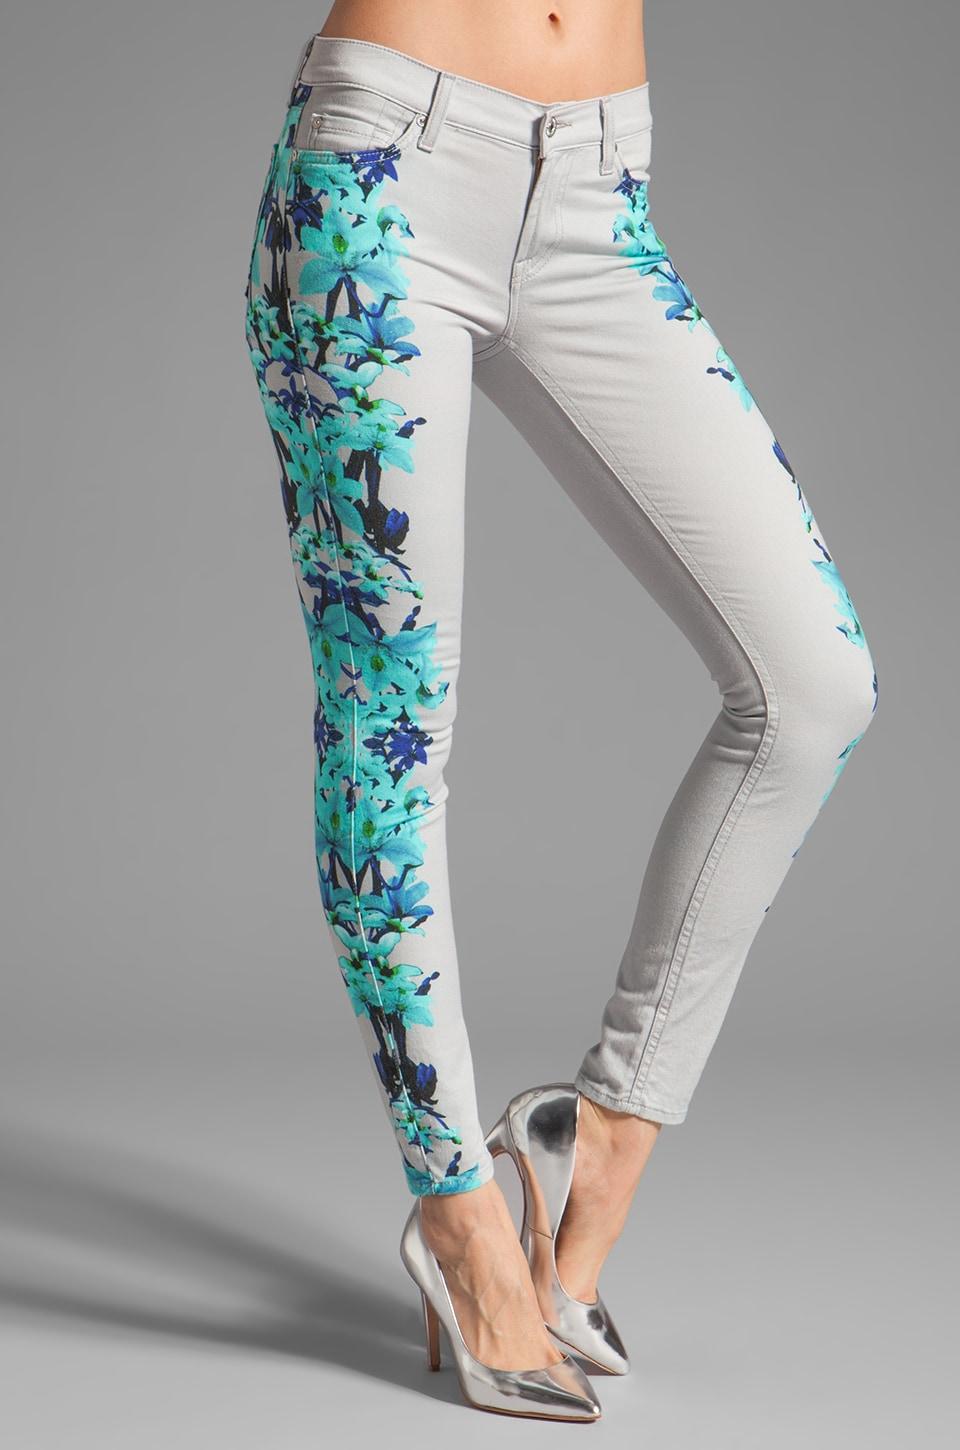 7 For All Mankind The Skinny in Floral Print